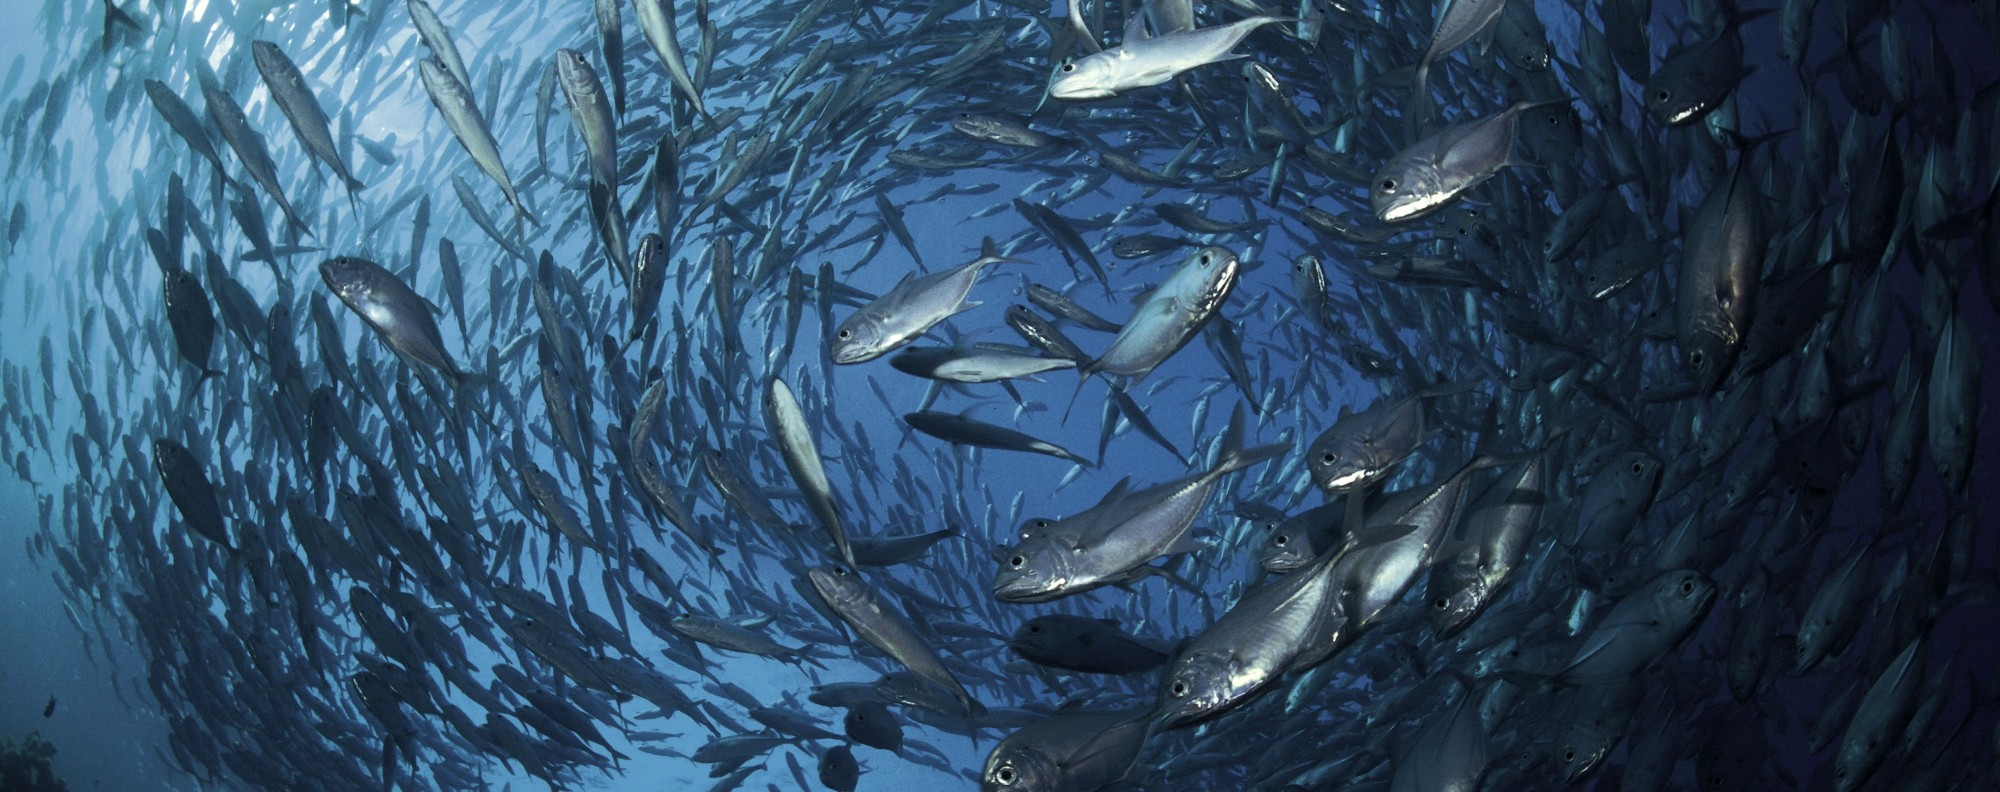 Bigeye jacks call the Indian and Pacific oceans home. Photo: WWF